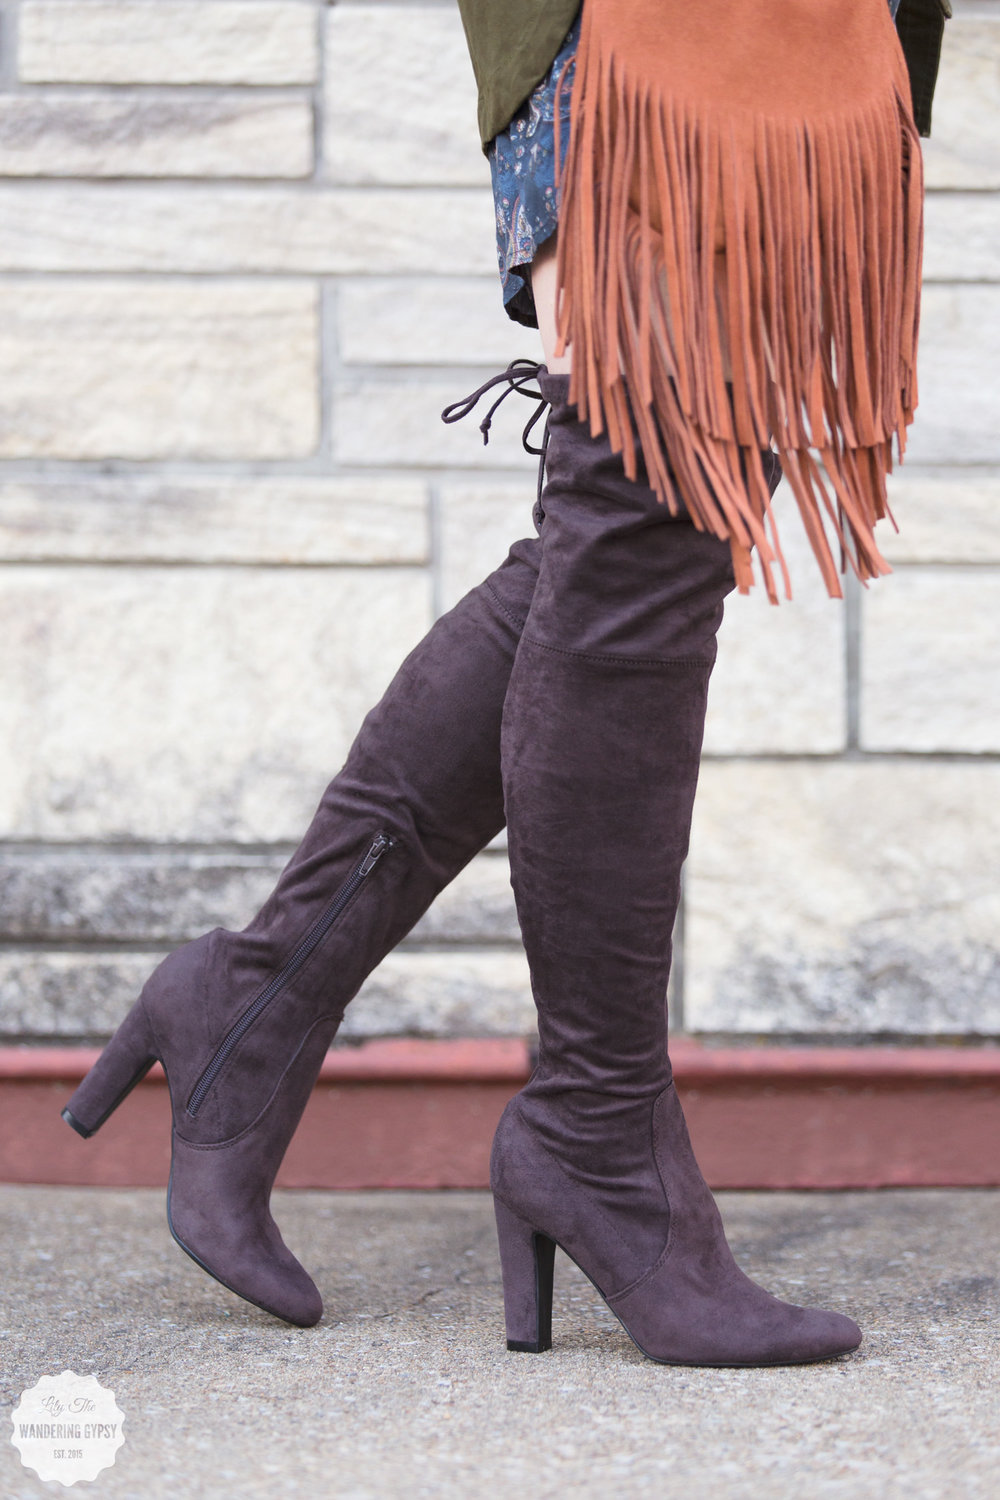 #MyDSW Over The Knee Boots for Fall